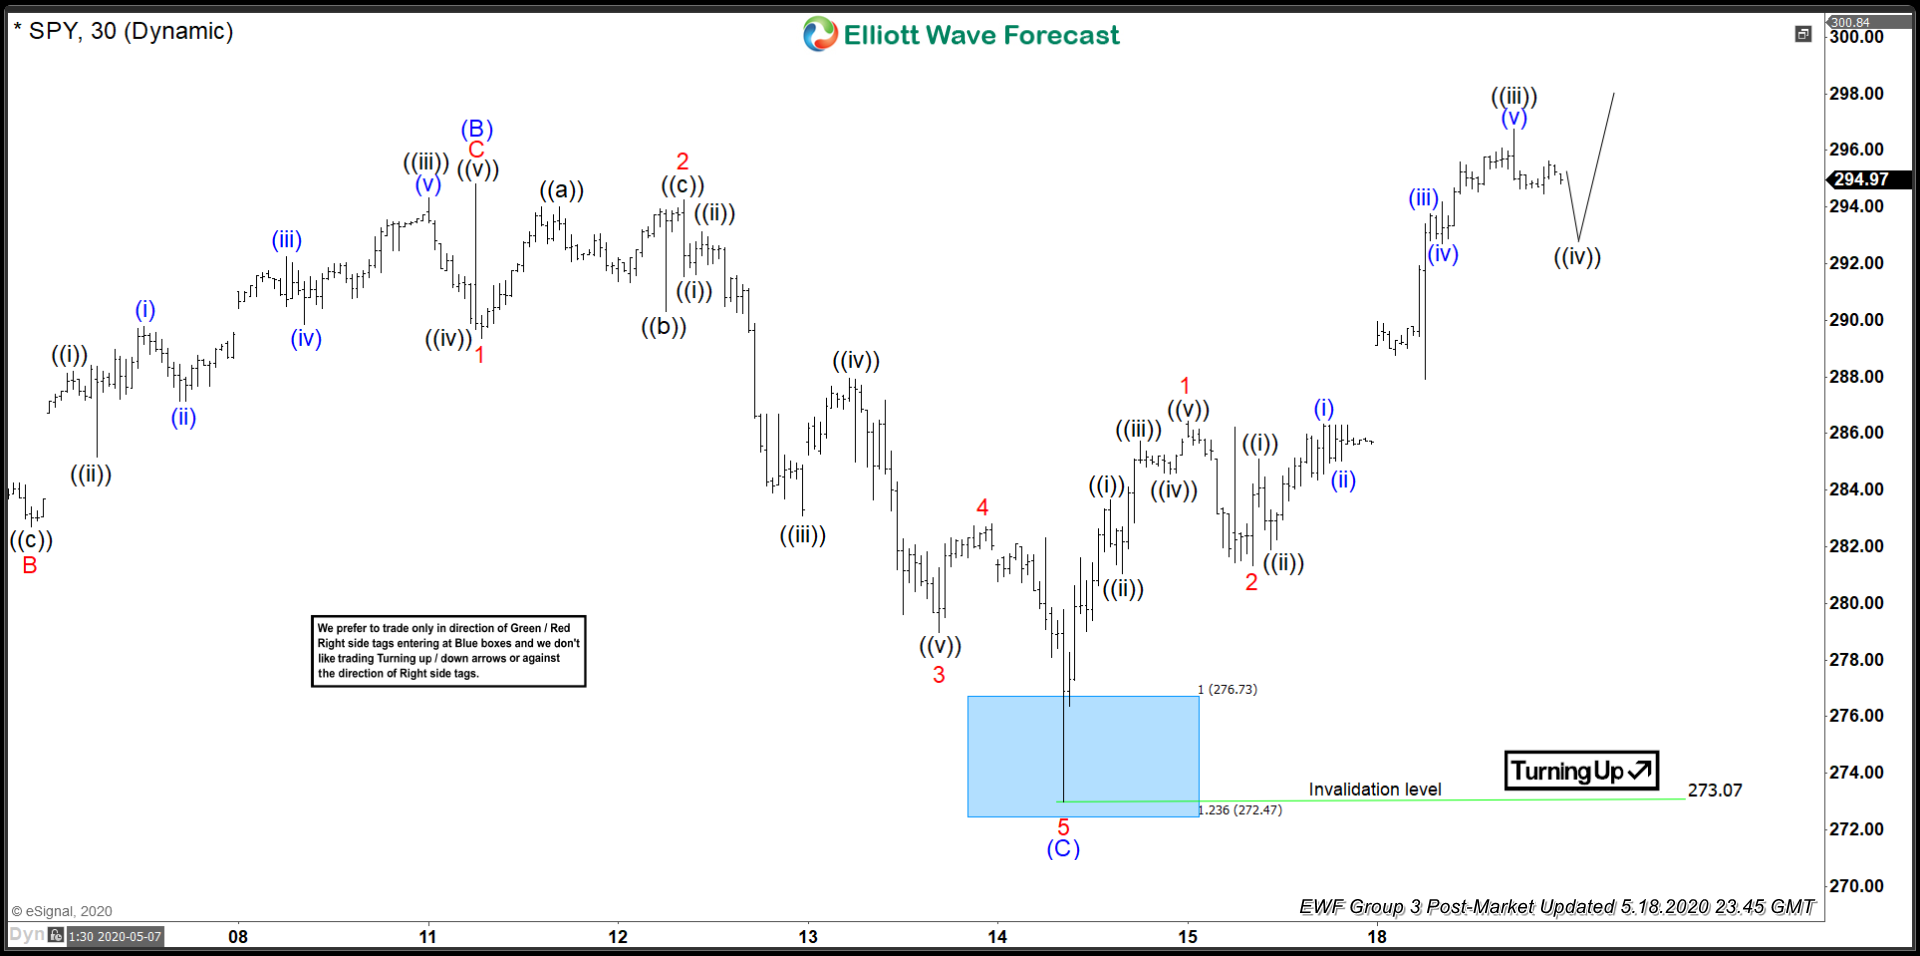 SPY 18 May 1 Hour Elliott Wave Update - Post Market